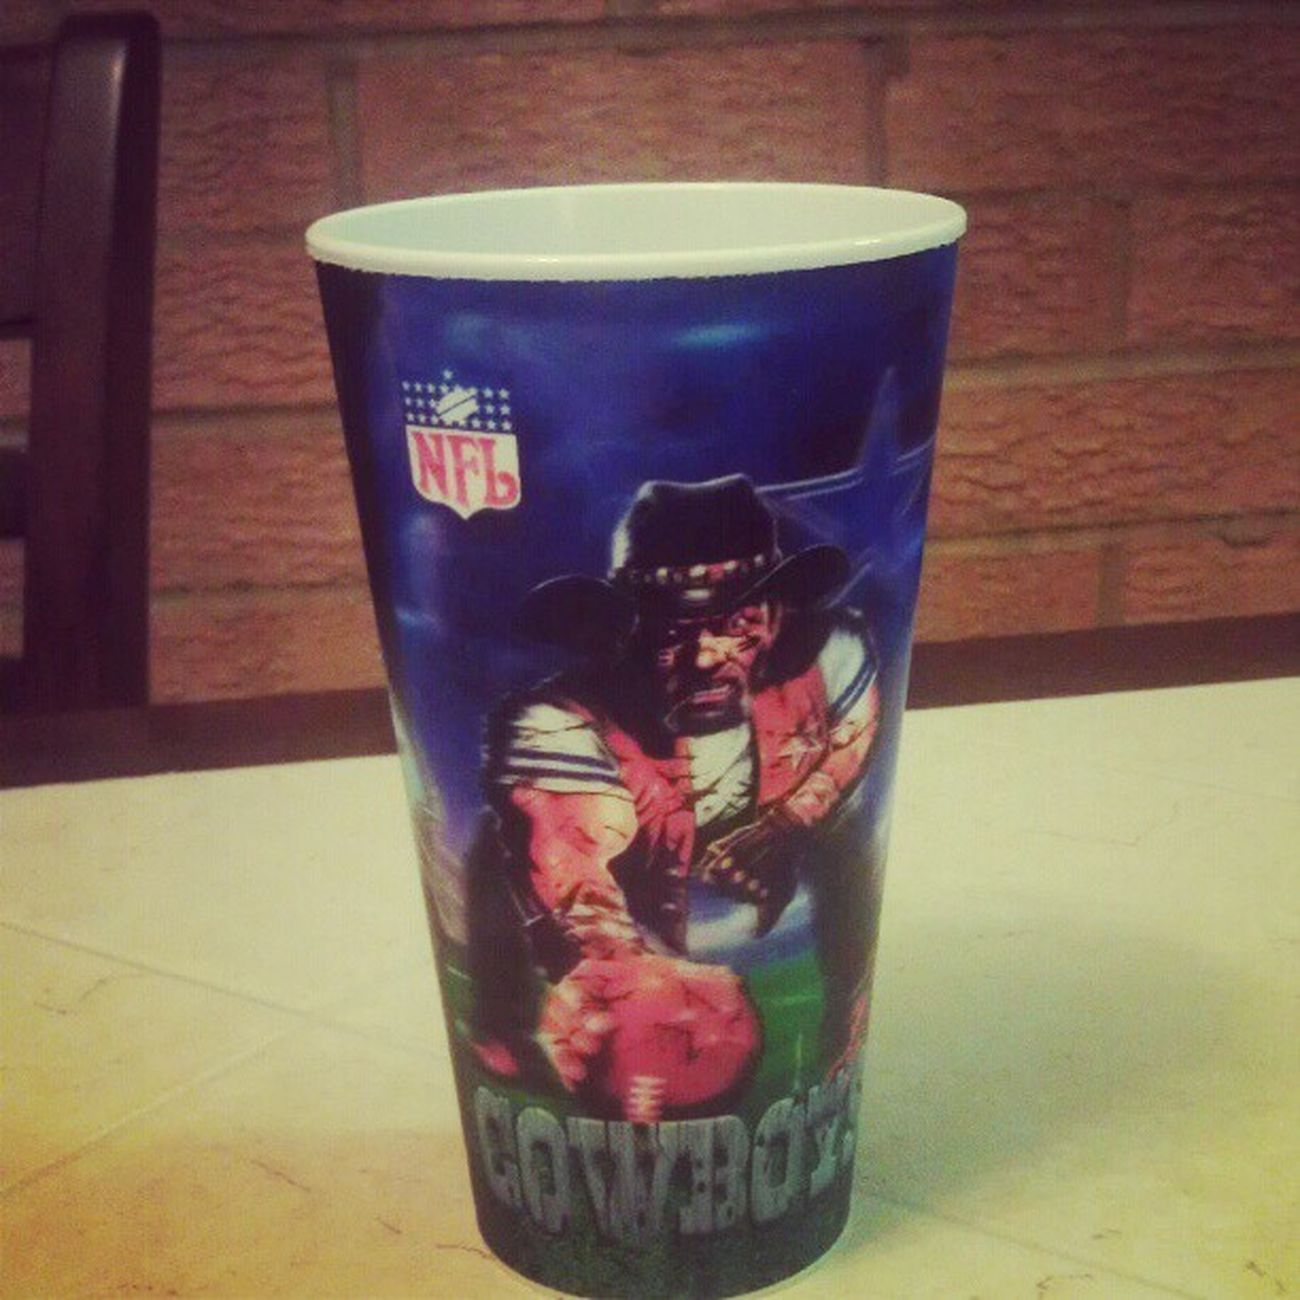 I poured into this cup and drank...HowBoutThemCowboys GoDallas